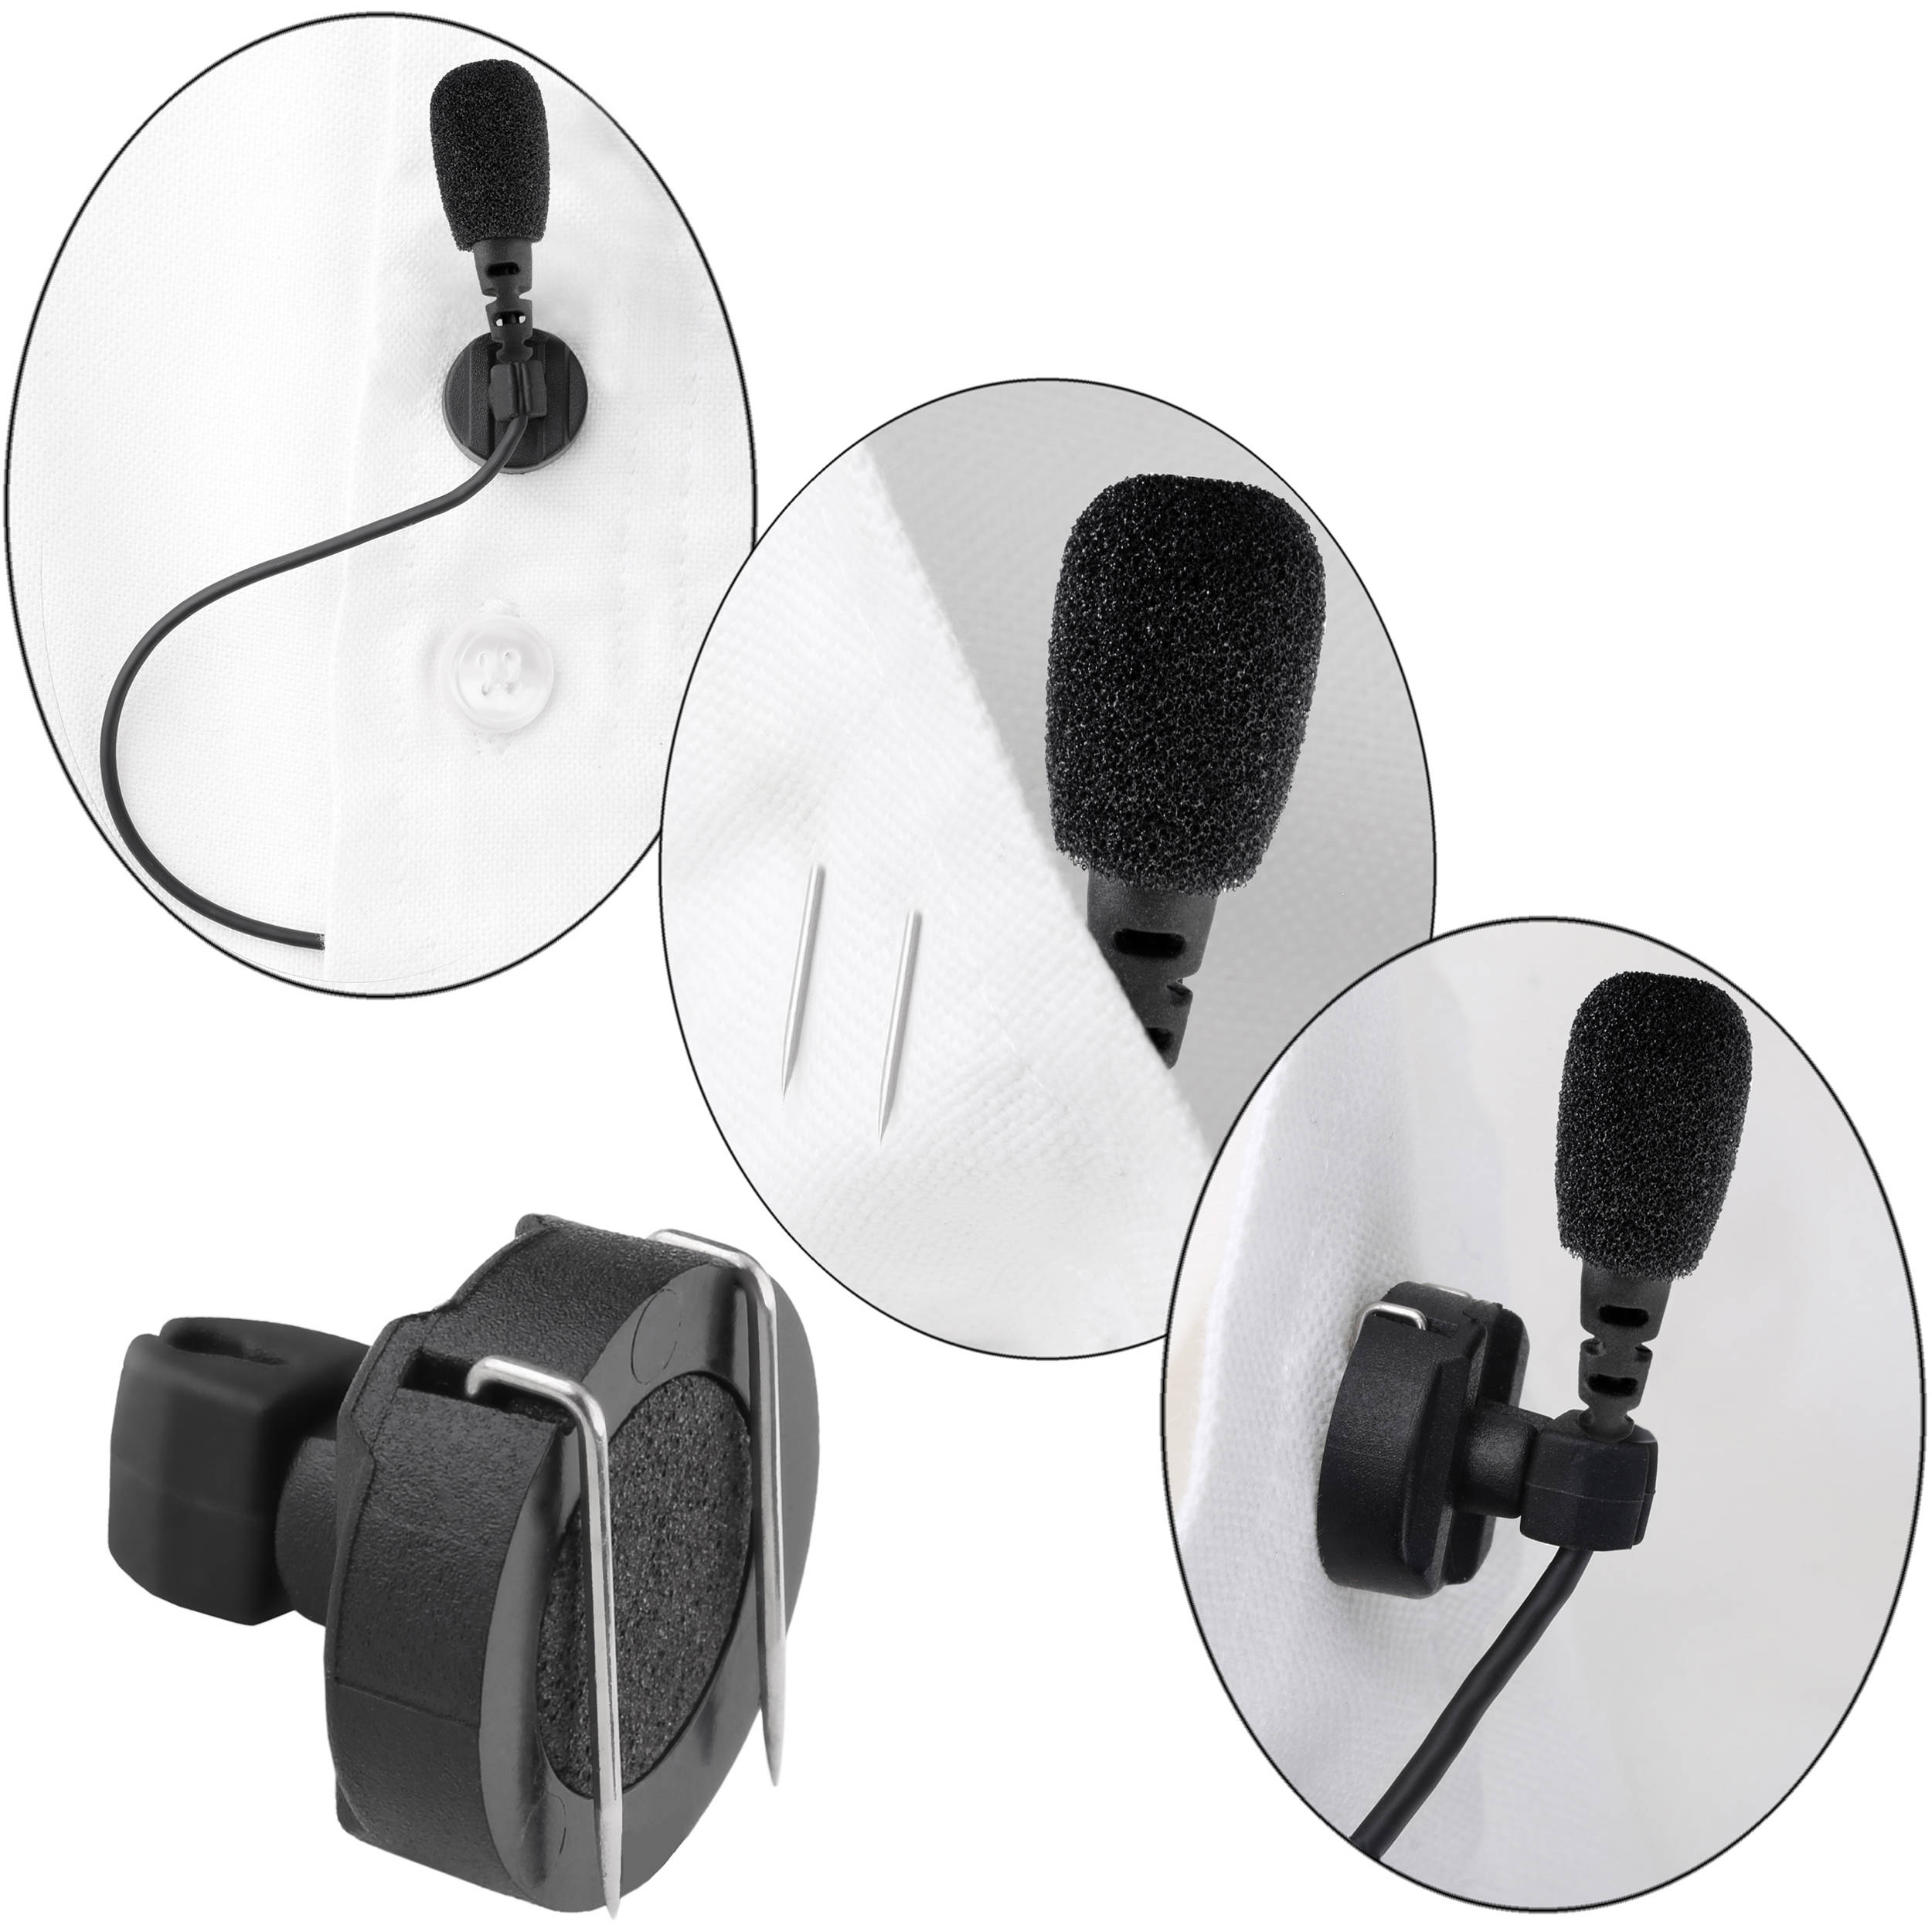 Senal UTM-86-TA5 Lavalier Mic with TA5 Connector for Lectrosonics Wireless Transmitters